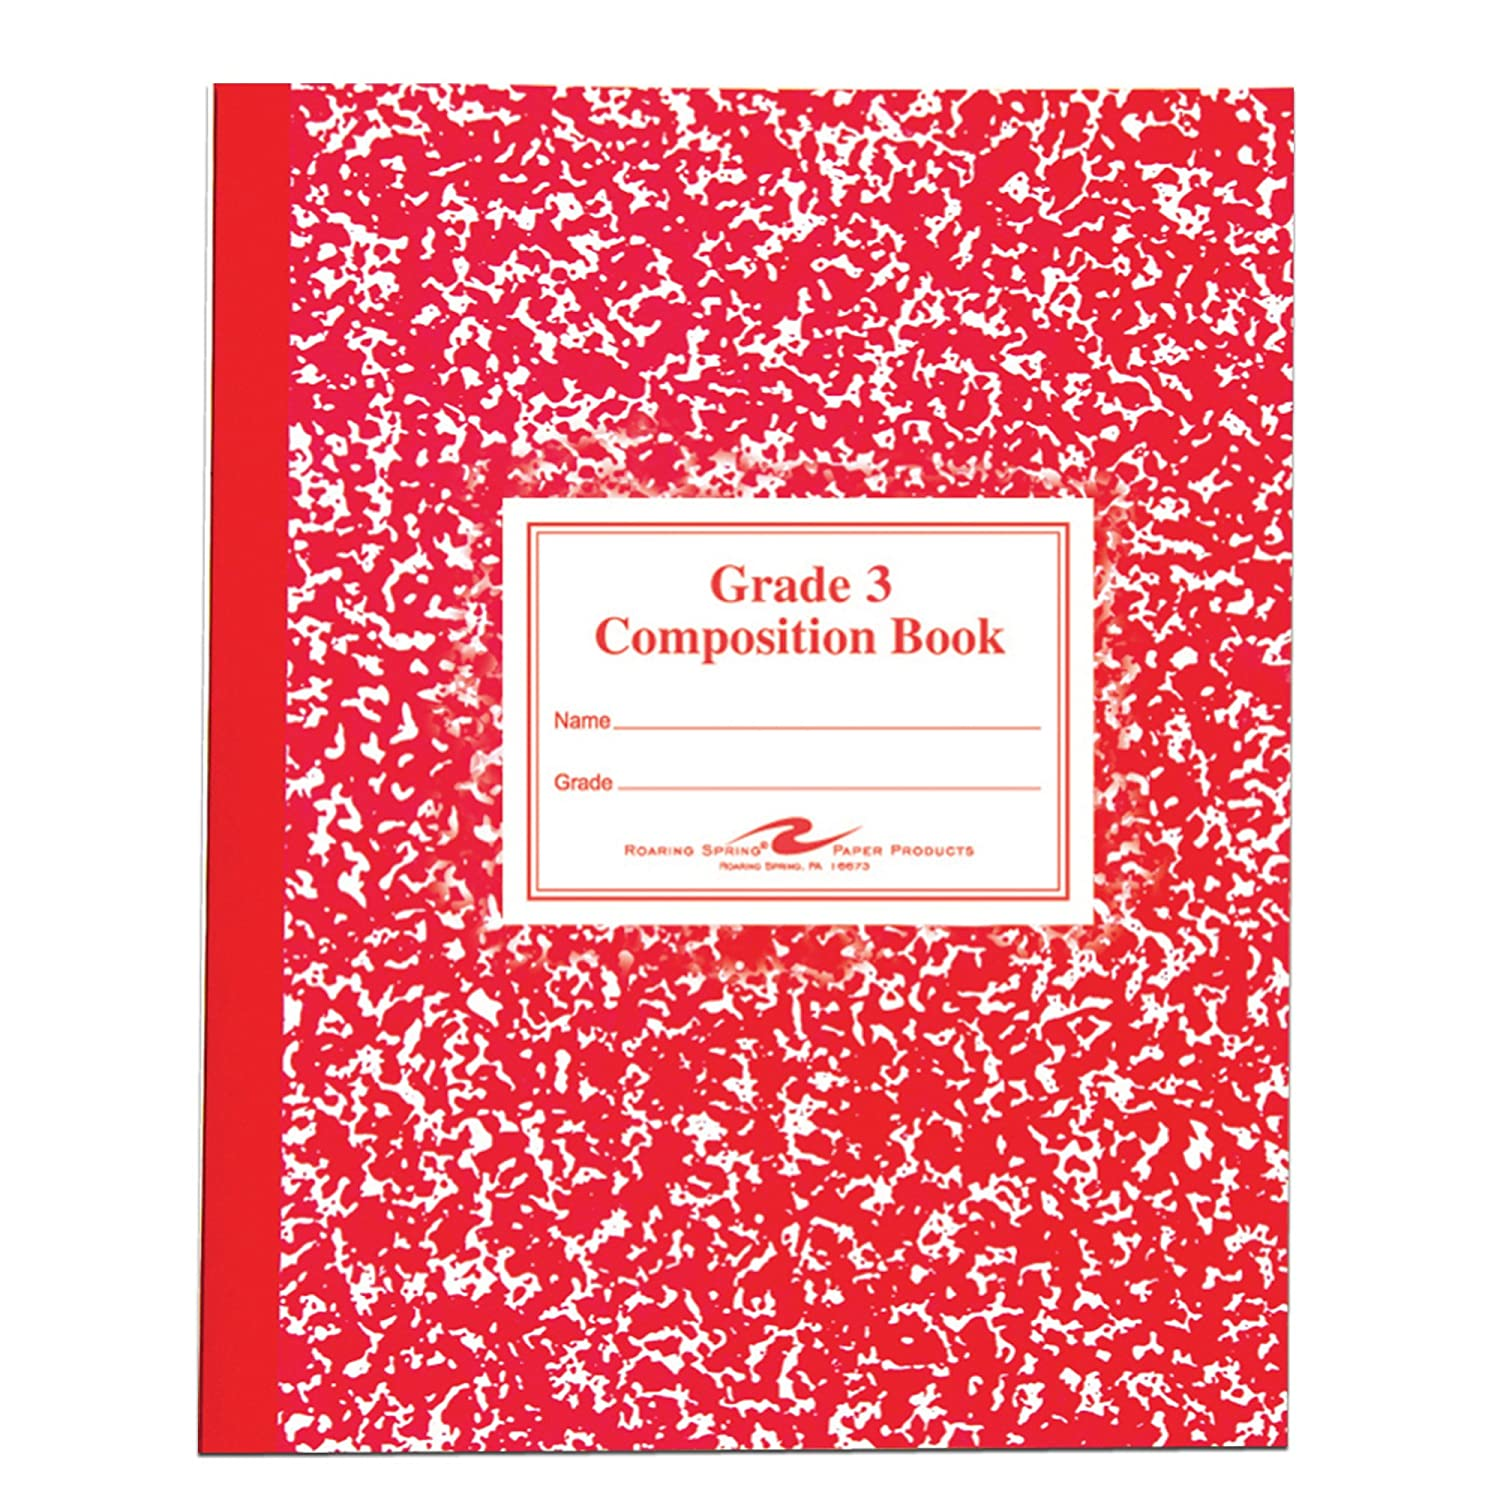 Grade School Ruled Composition Book, 9-3/4 x 7-3/4, WE/BE, 50 Pages